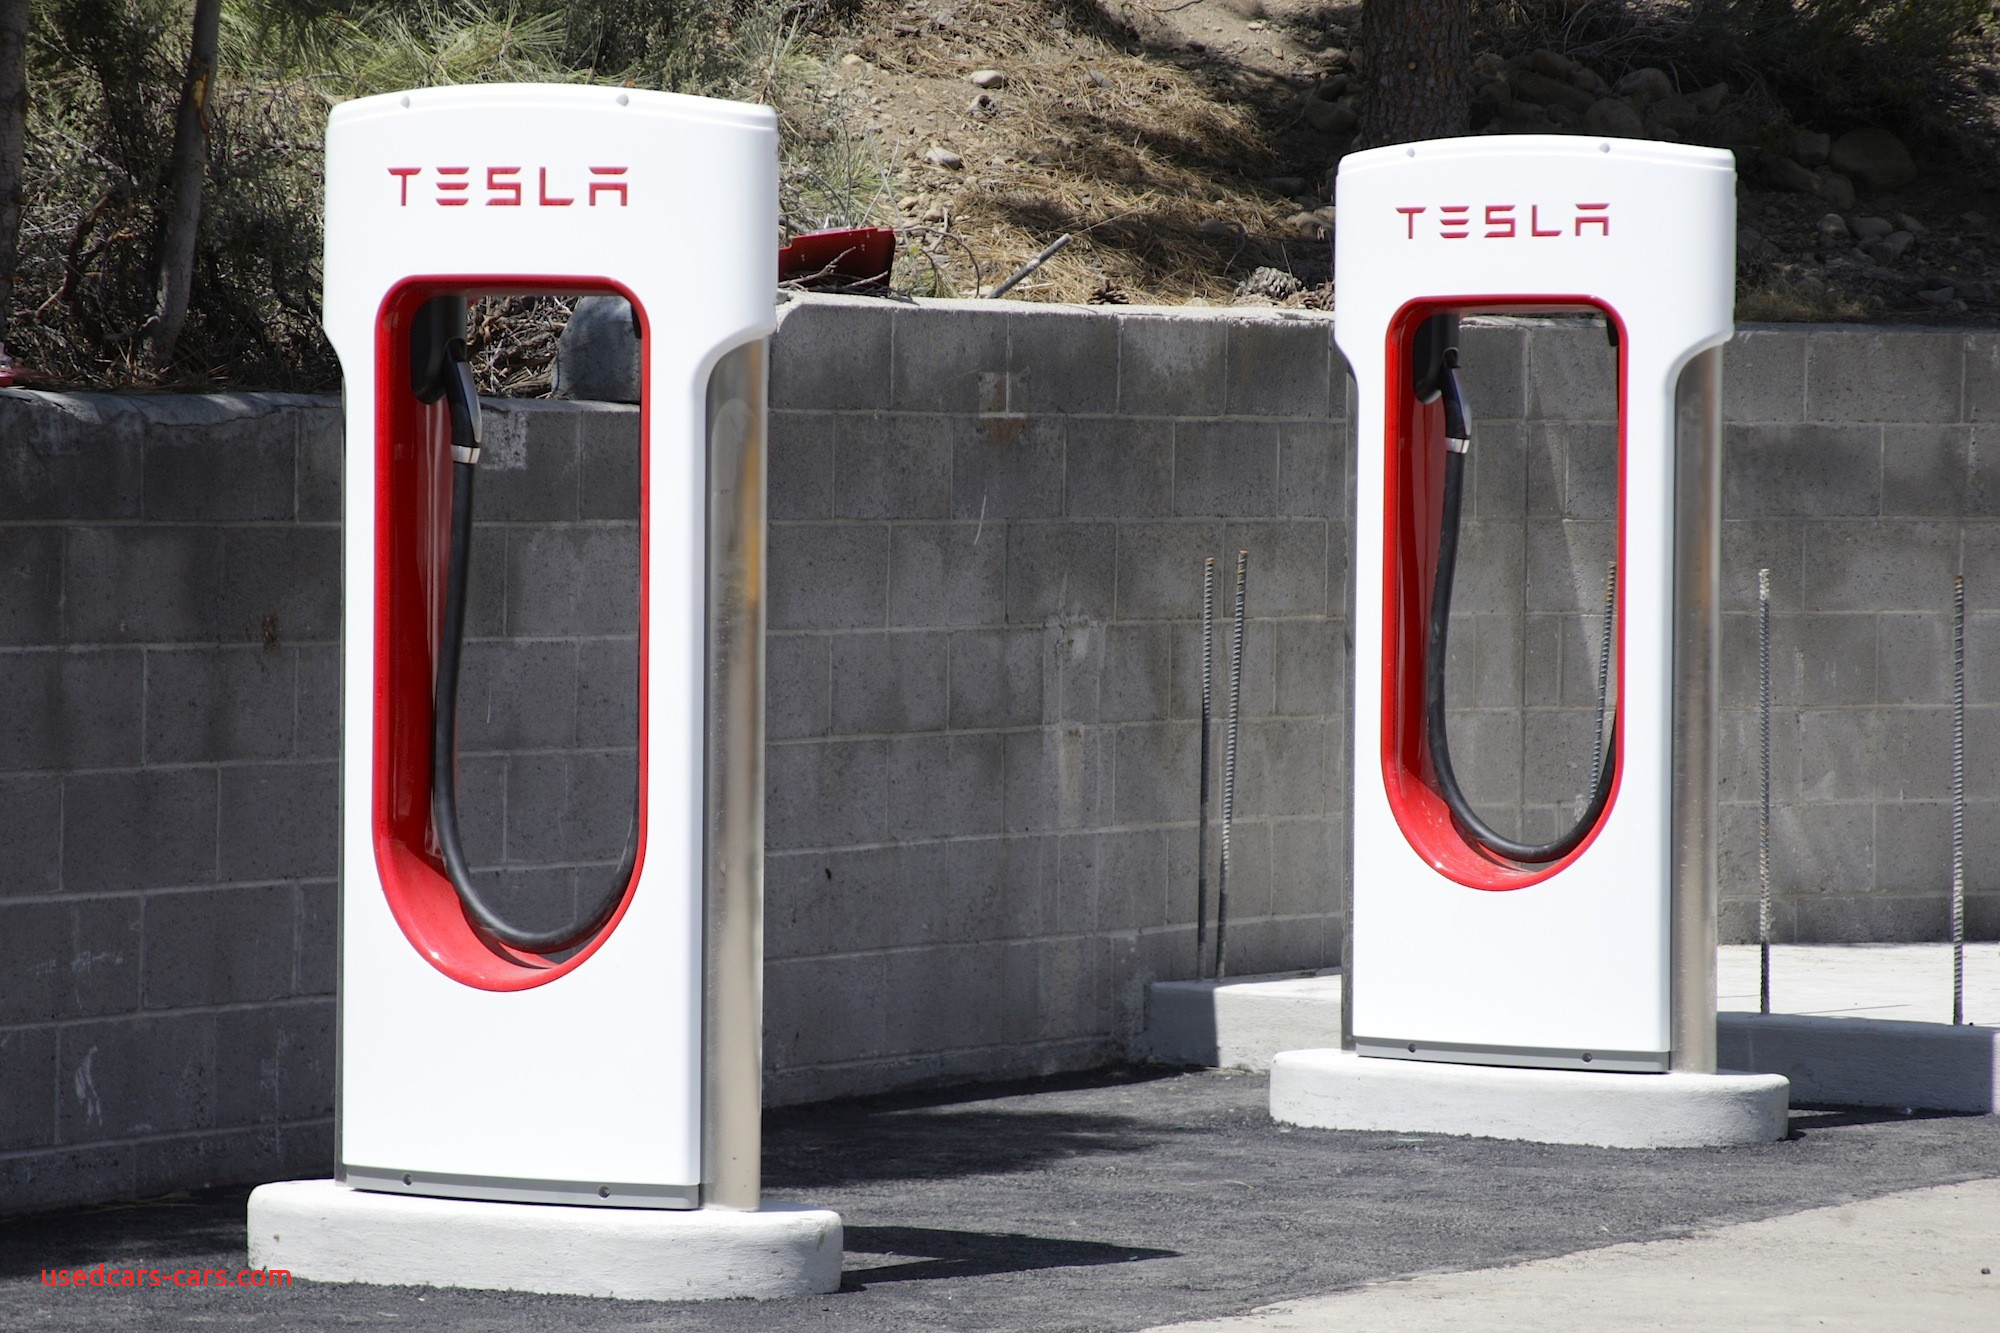 detroit tesla to end free use of supercharging stations